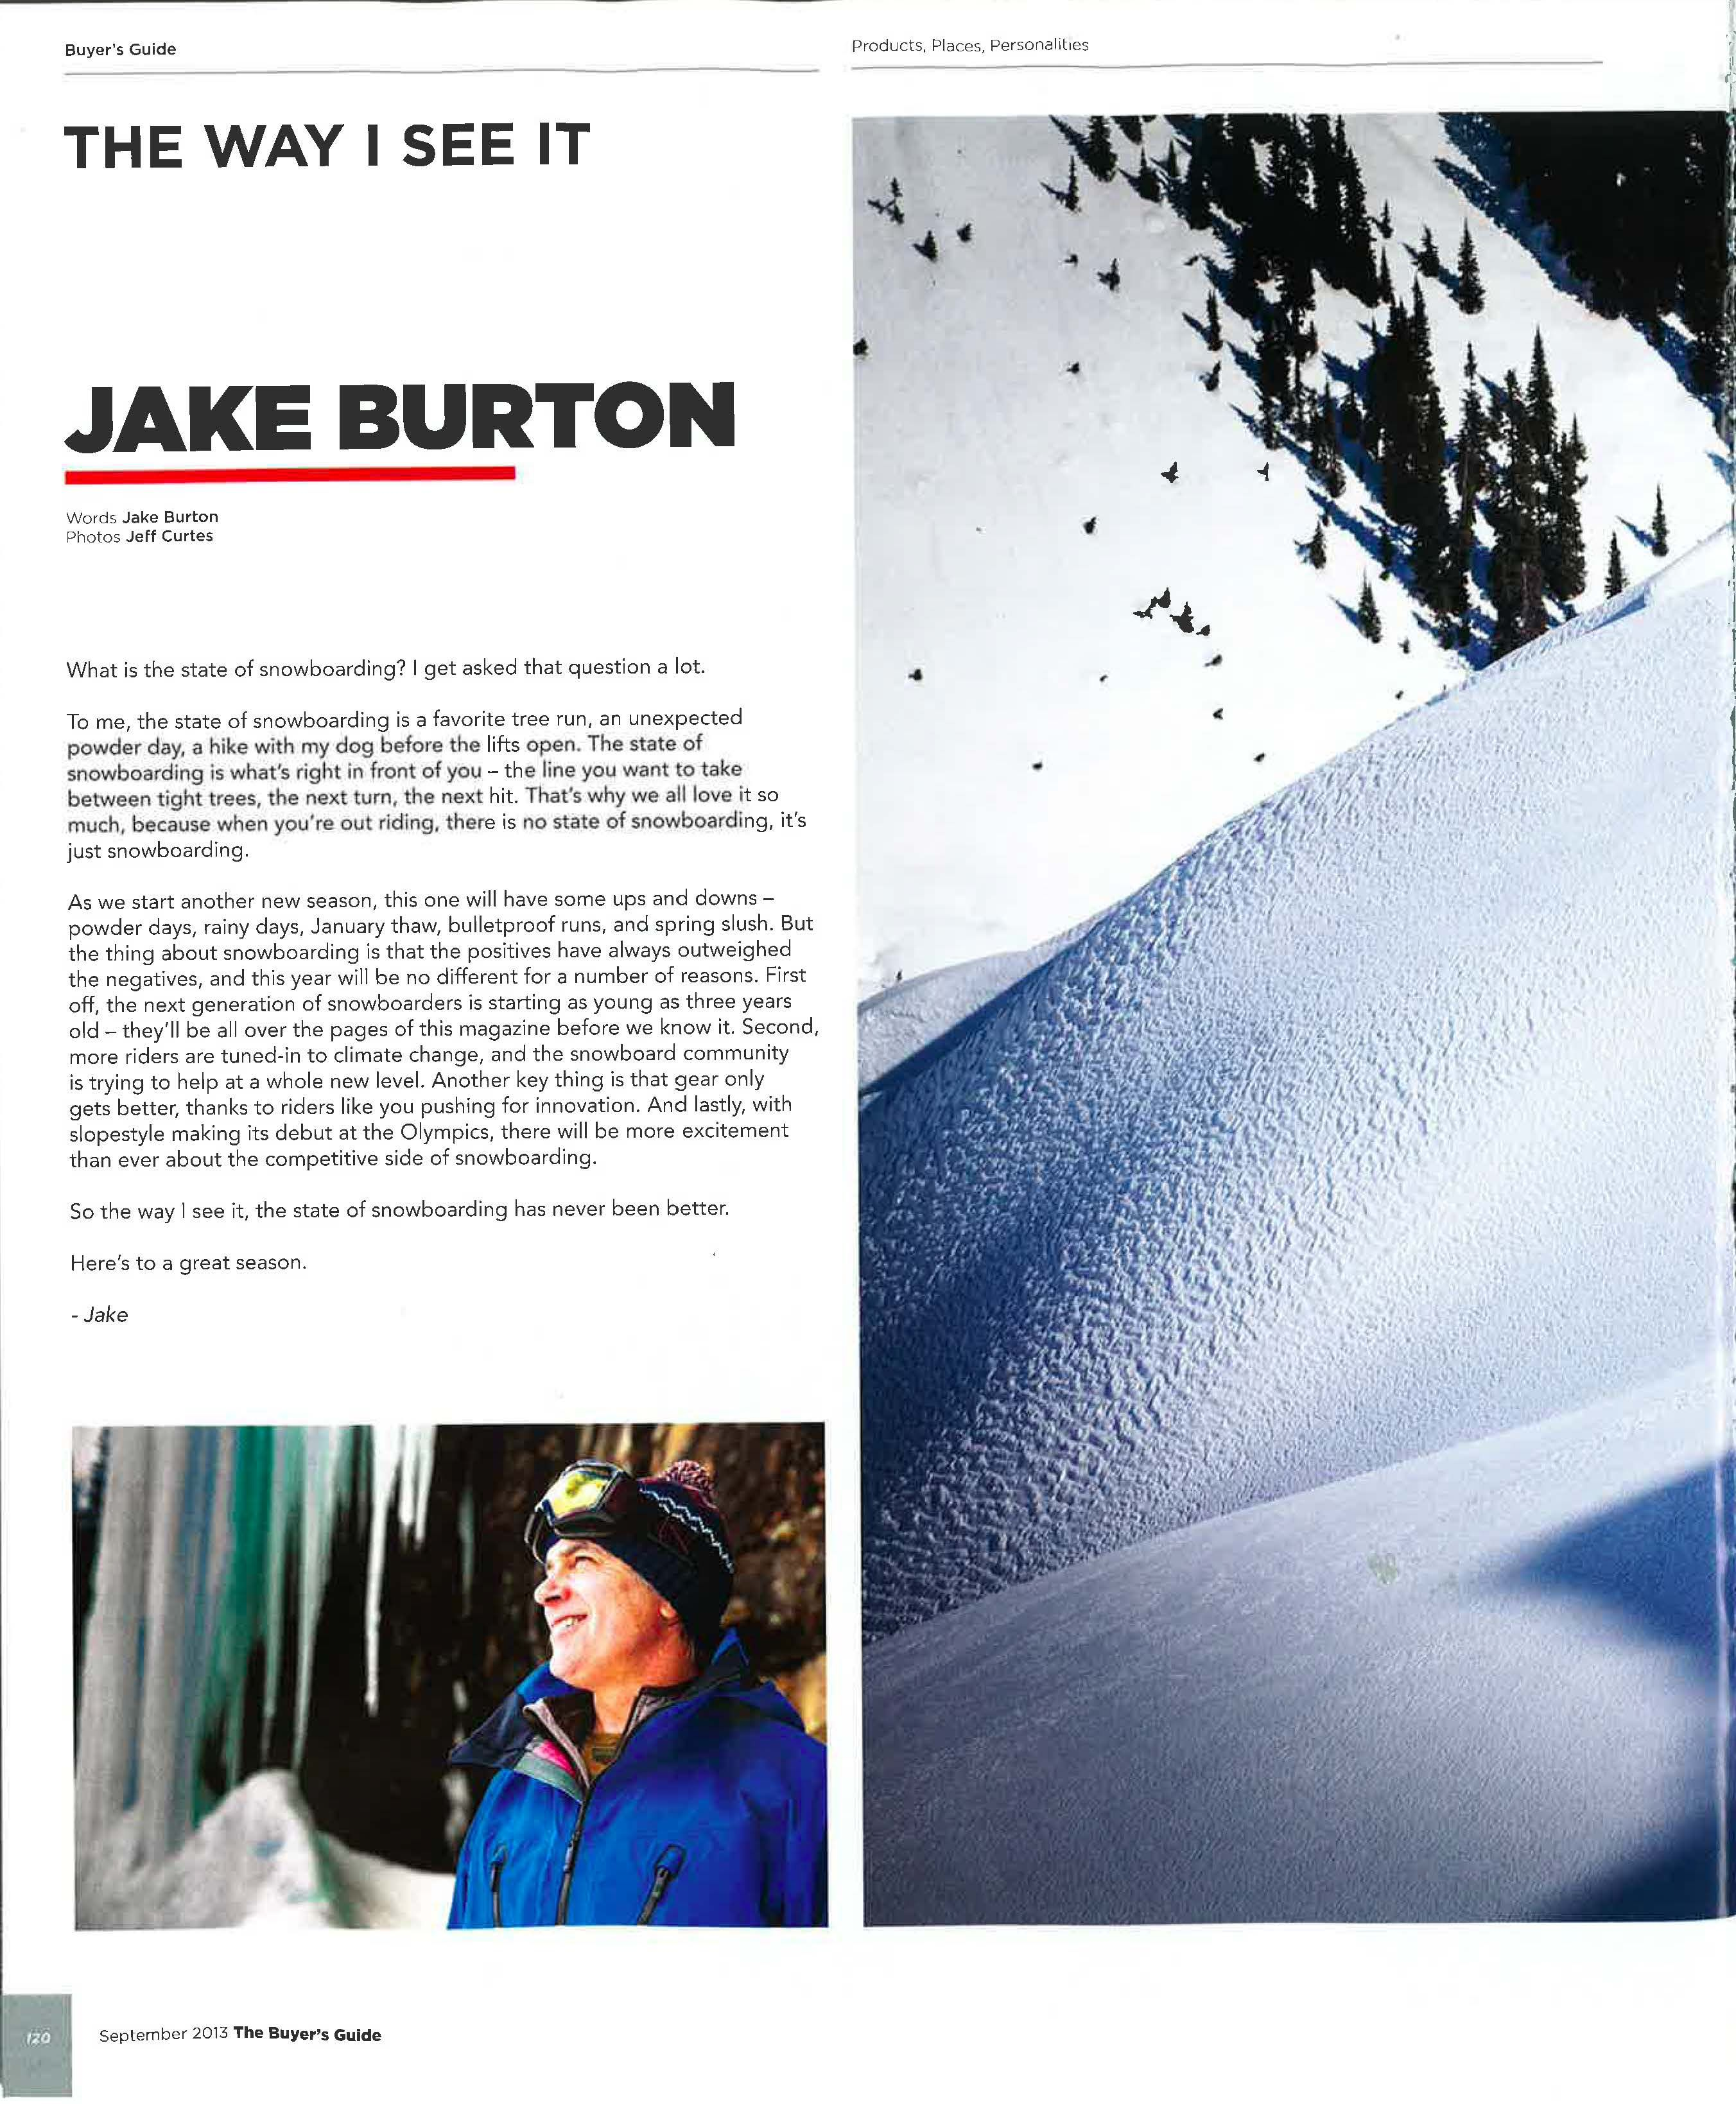 jake burton featured in snowboard magazine the way i see it is a rh pinterest co uk Snowboard Magazine Layout Snowboard Magazine Layout